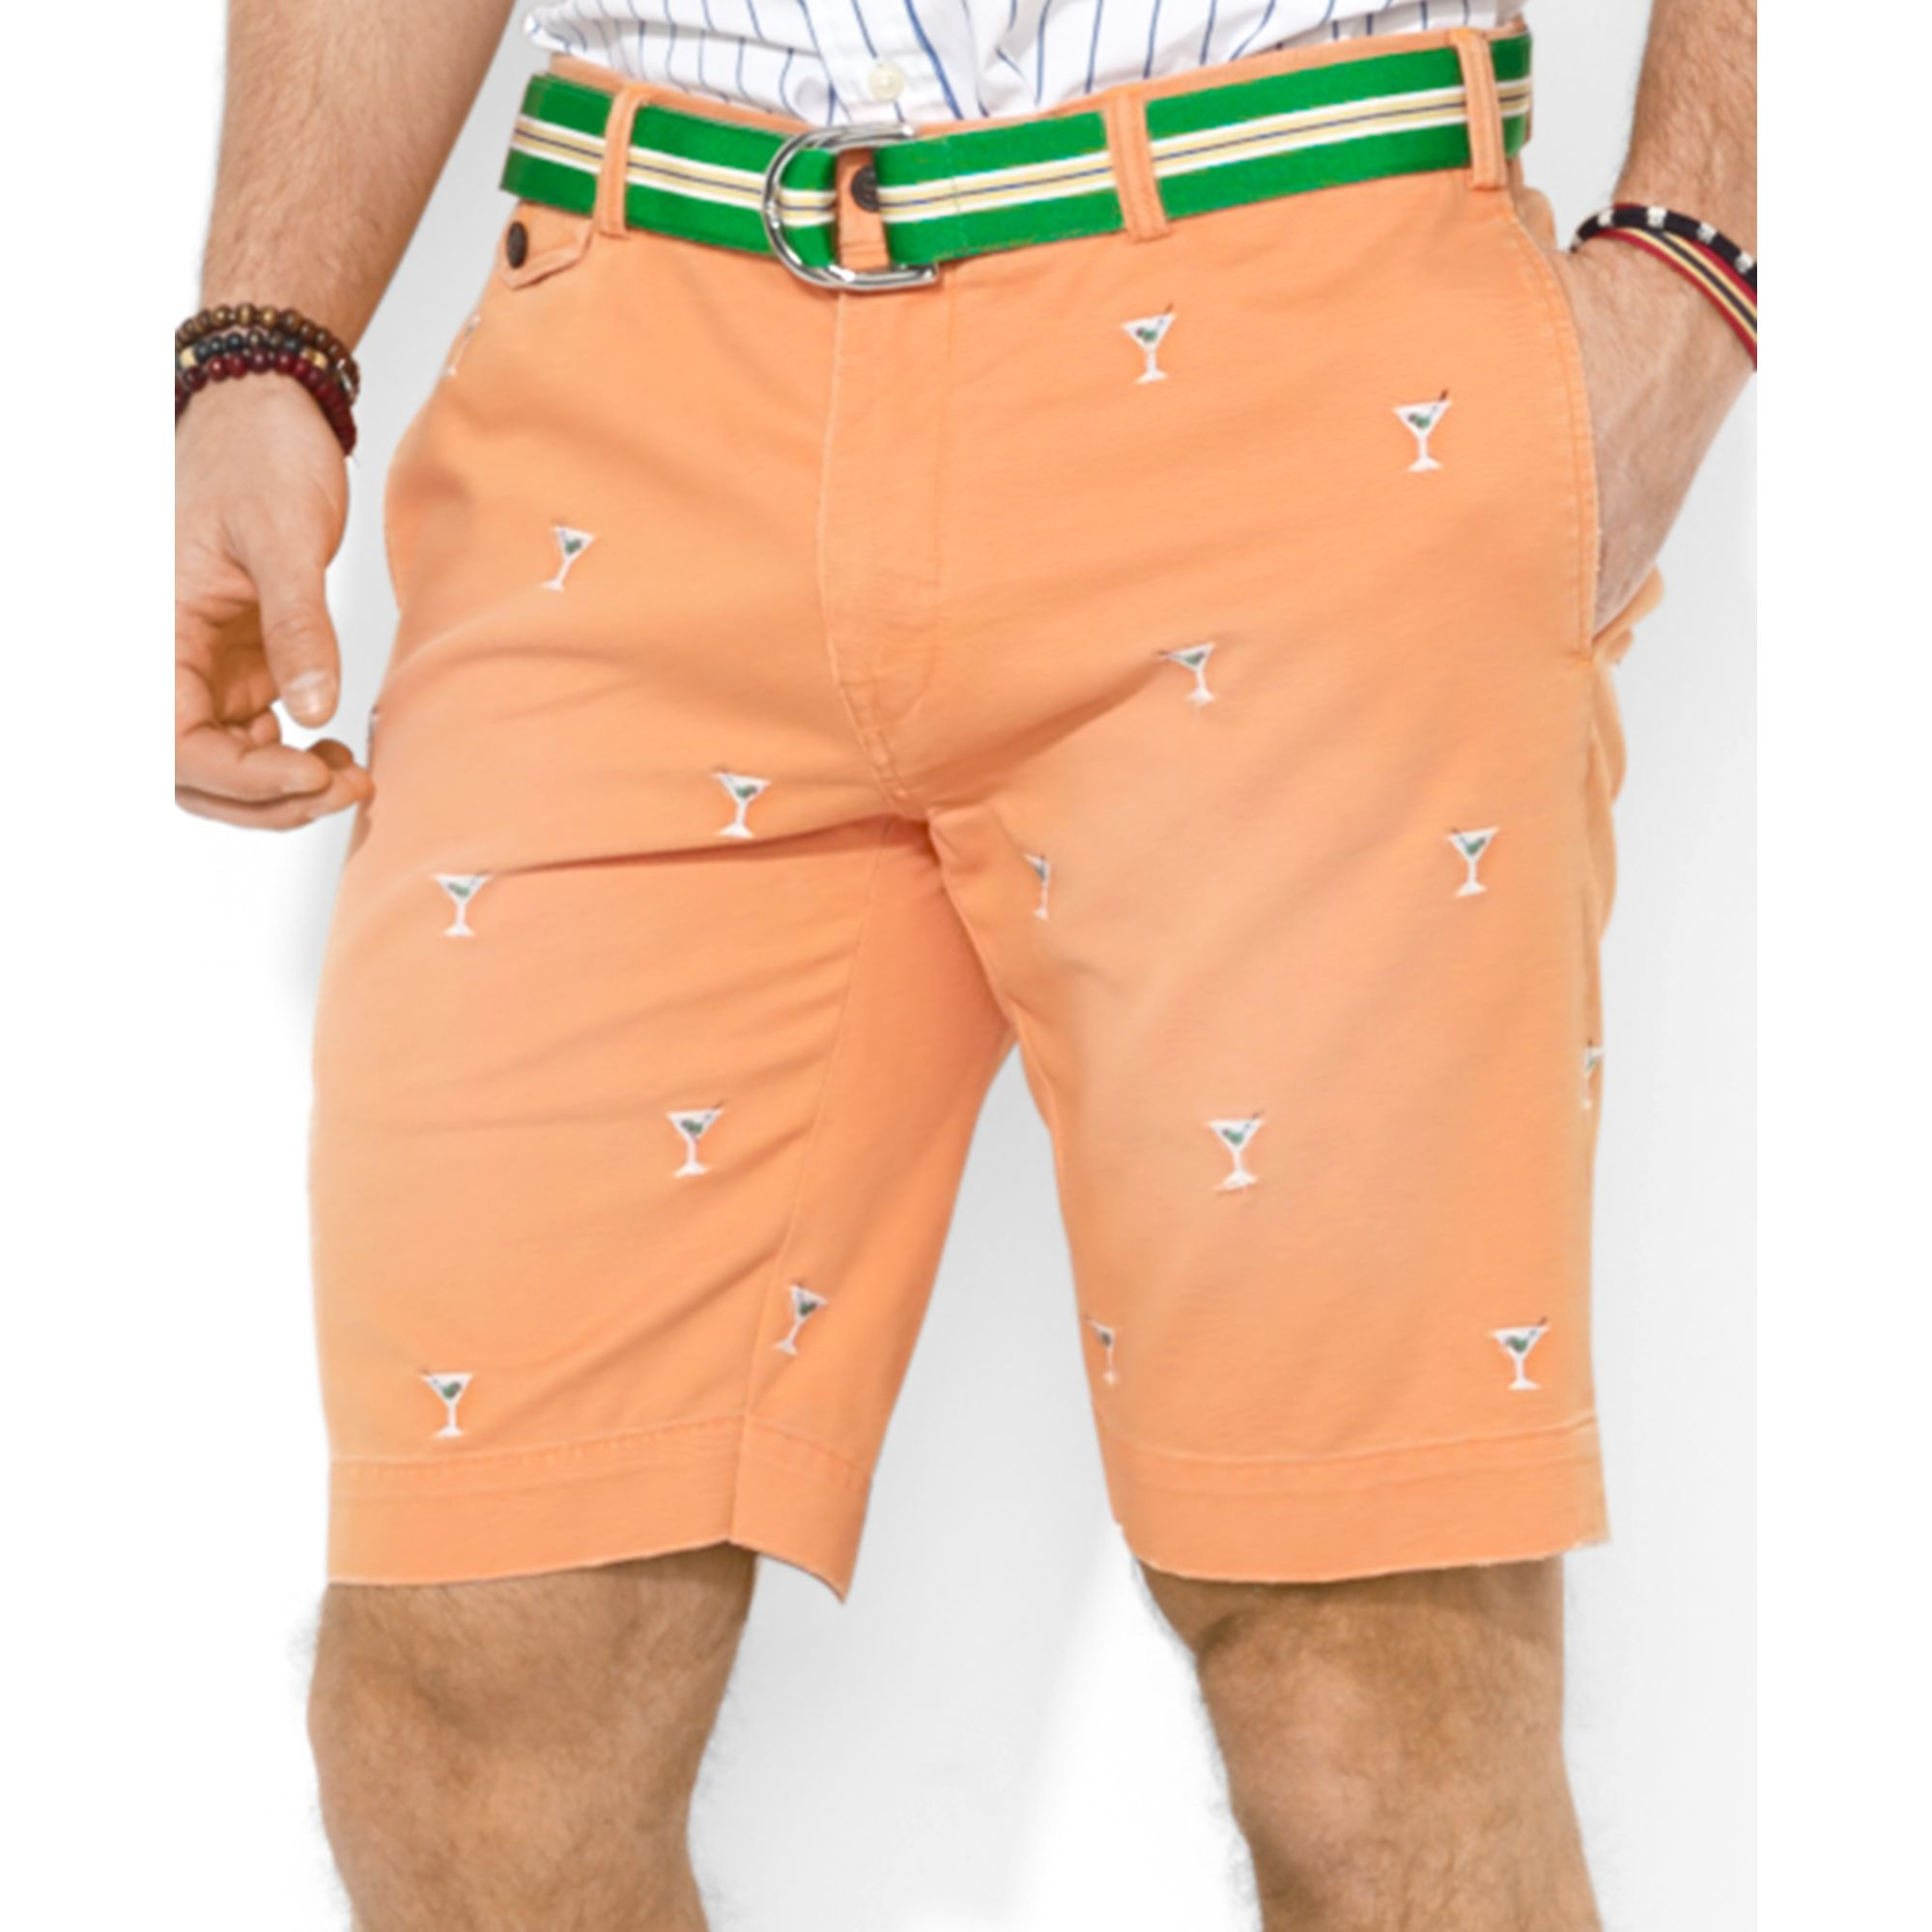 For Lauren Men Polo Ralph Classicfit Orange Shorts Chino Greenwich Embroidered TluK3cF1J